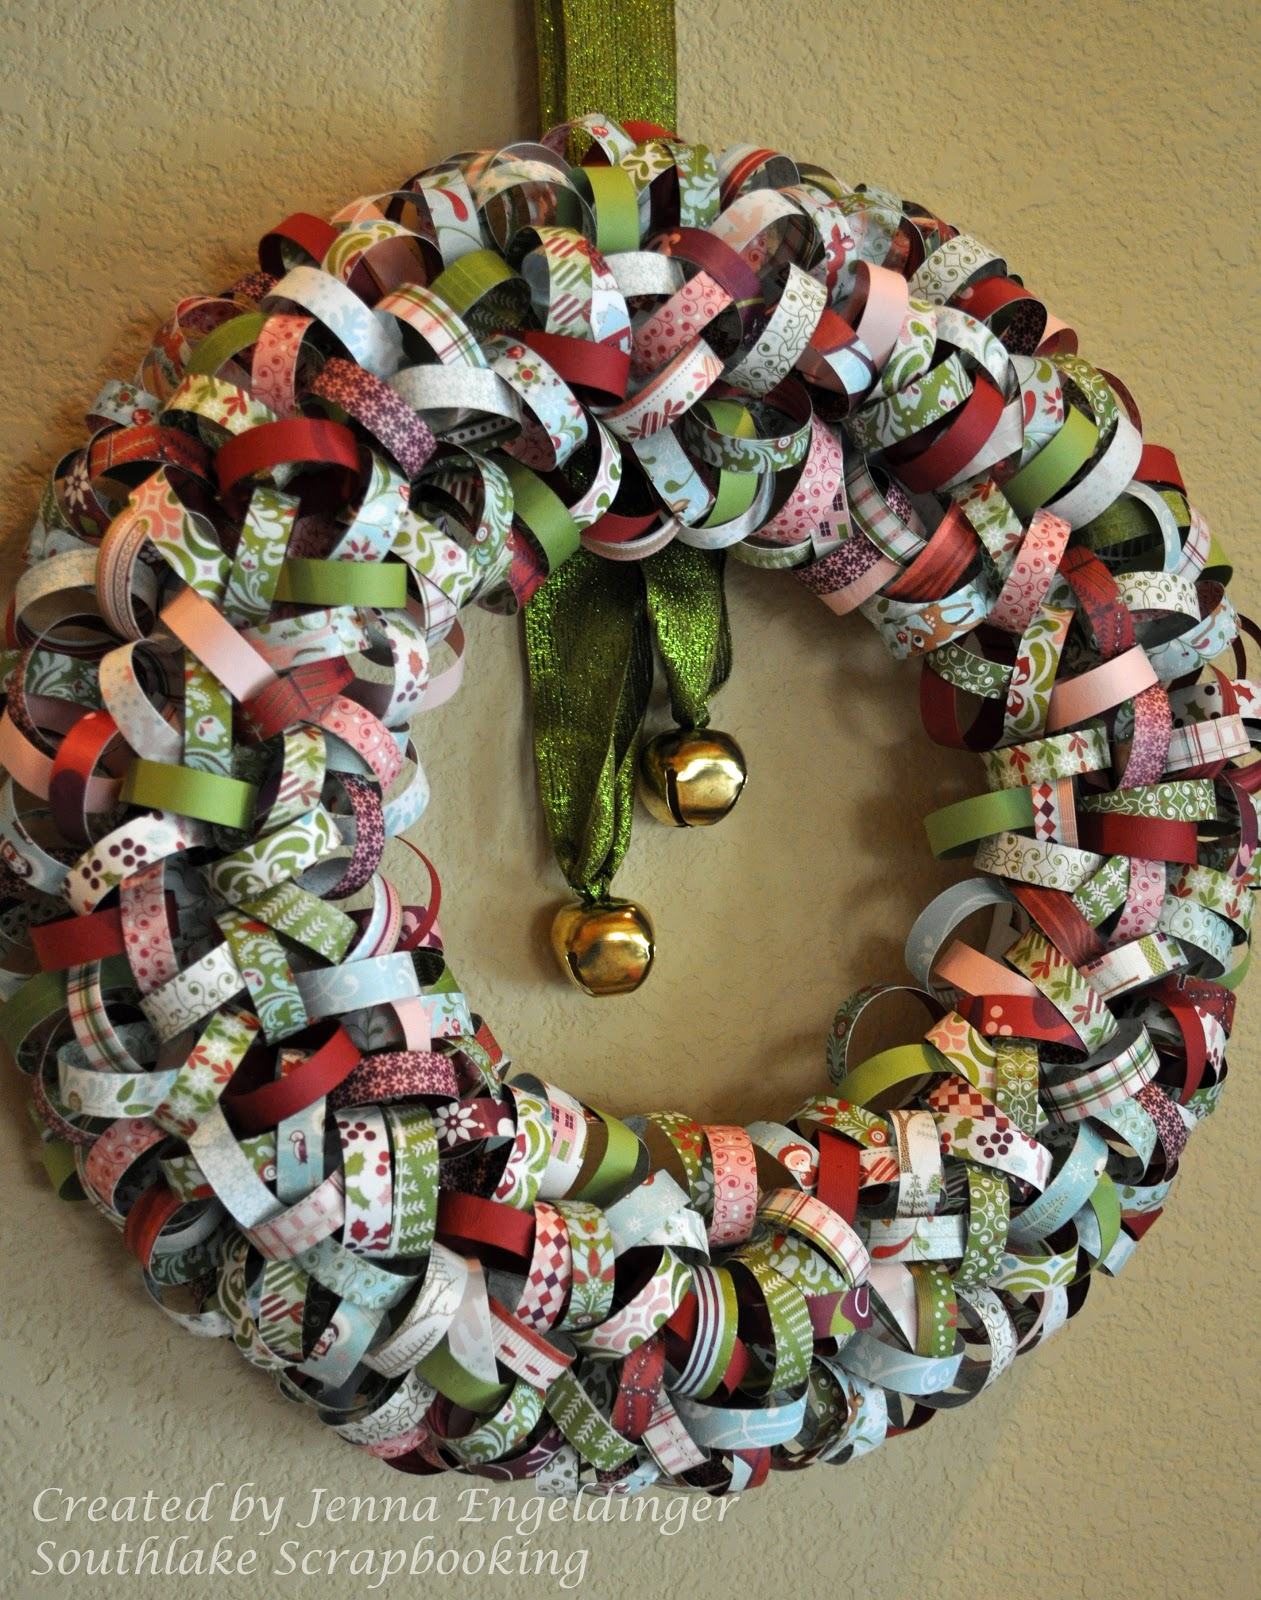 Southlake Scrapbooking Christmas Wreath